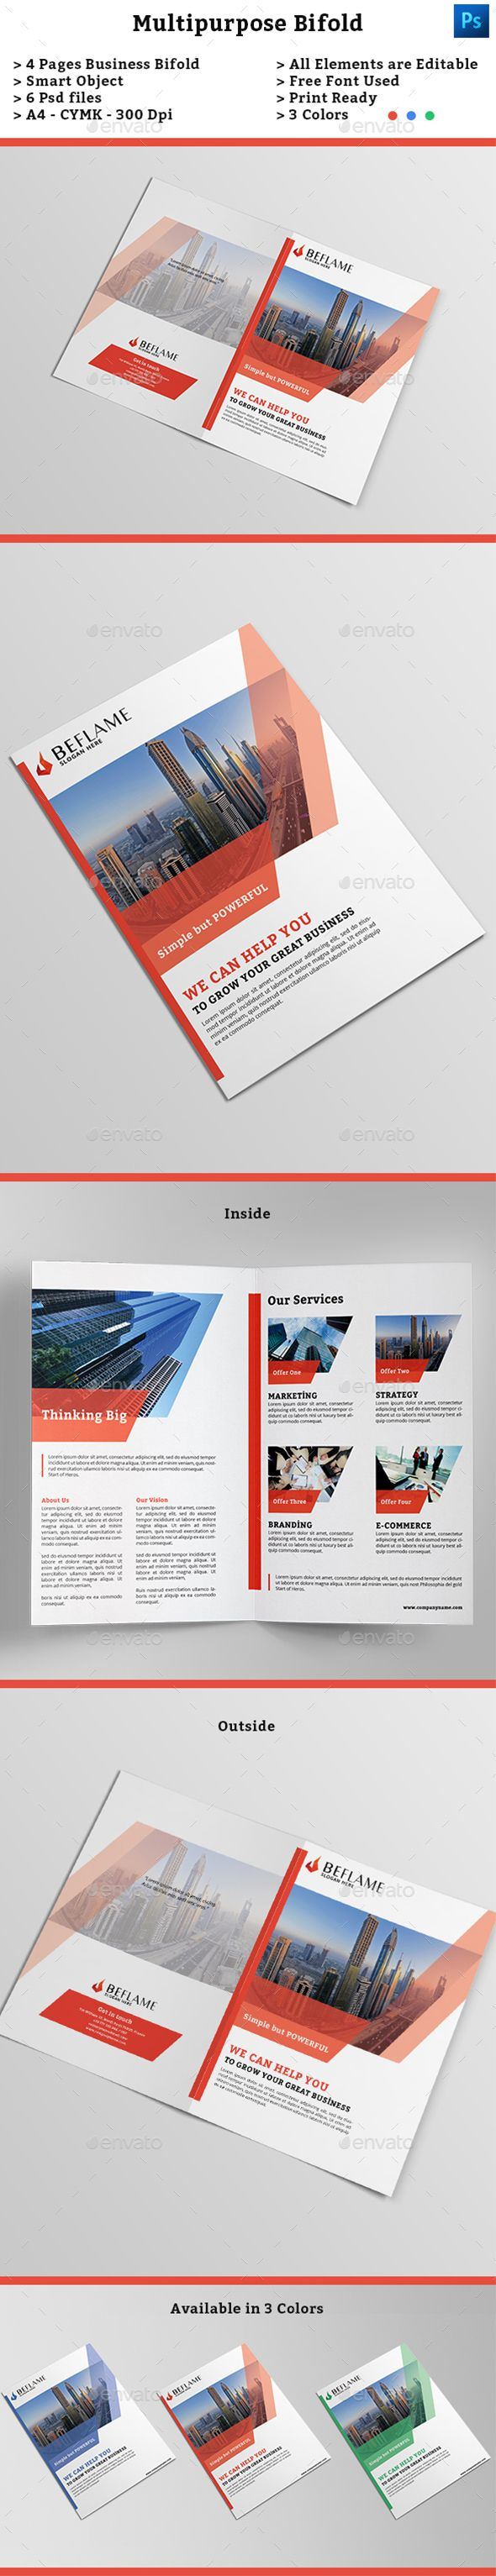 Corporate Bifold Brochure Template PSD #design Download: http://graphicriver.net/item/corporate-bifold-brochure-template/13748766?ref=ksioks